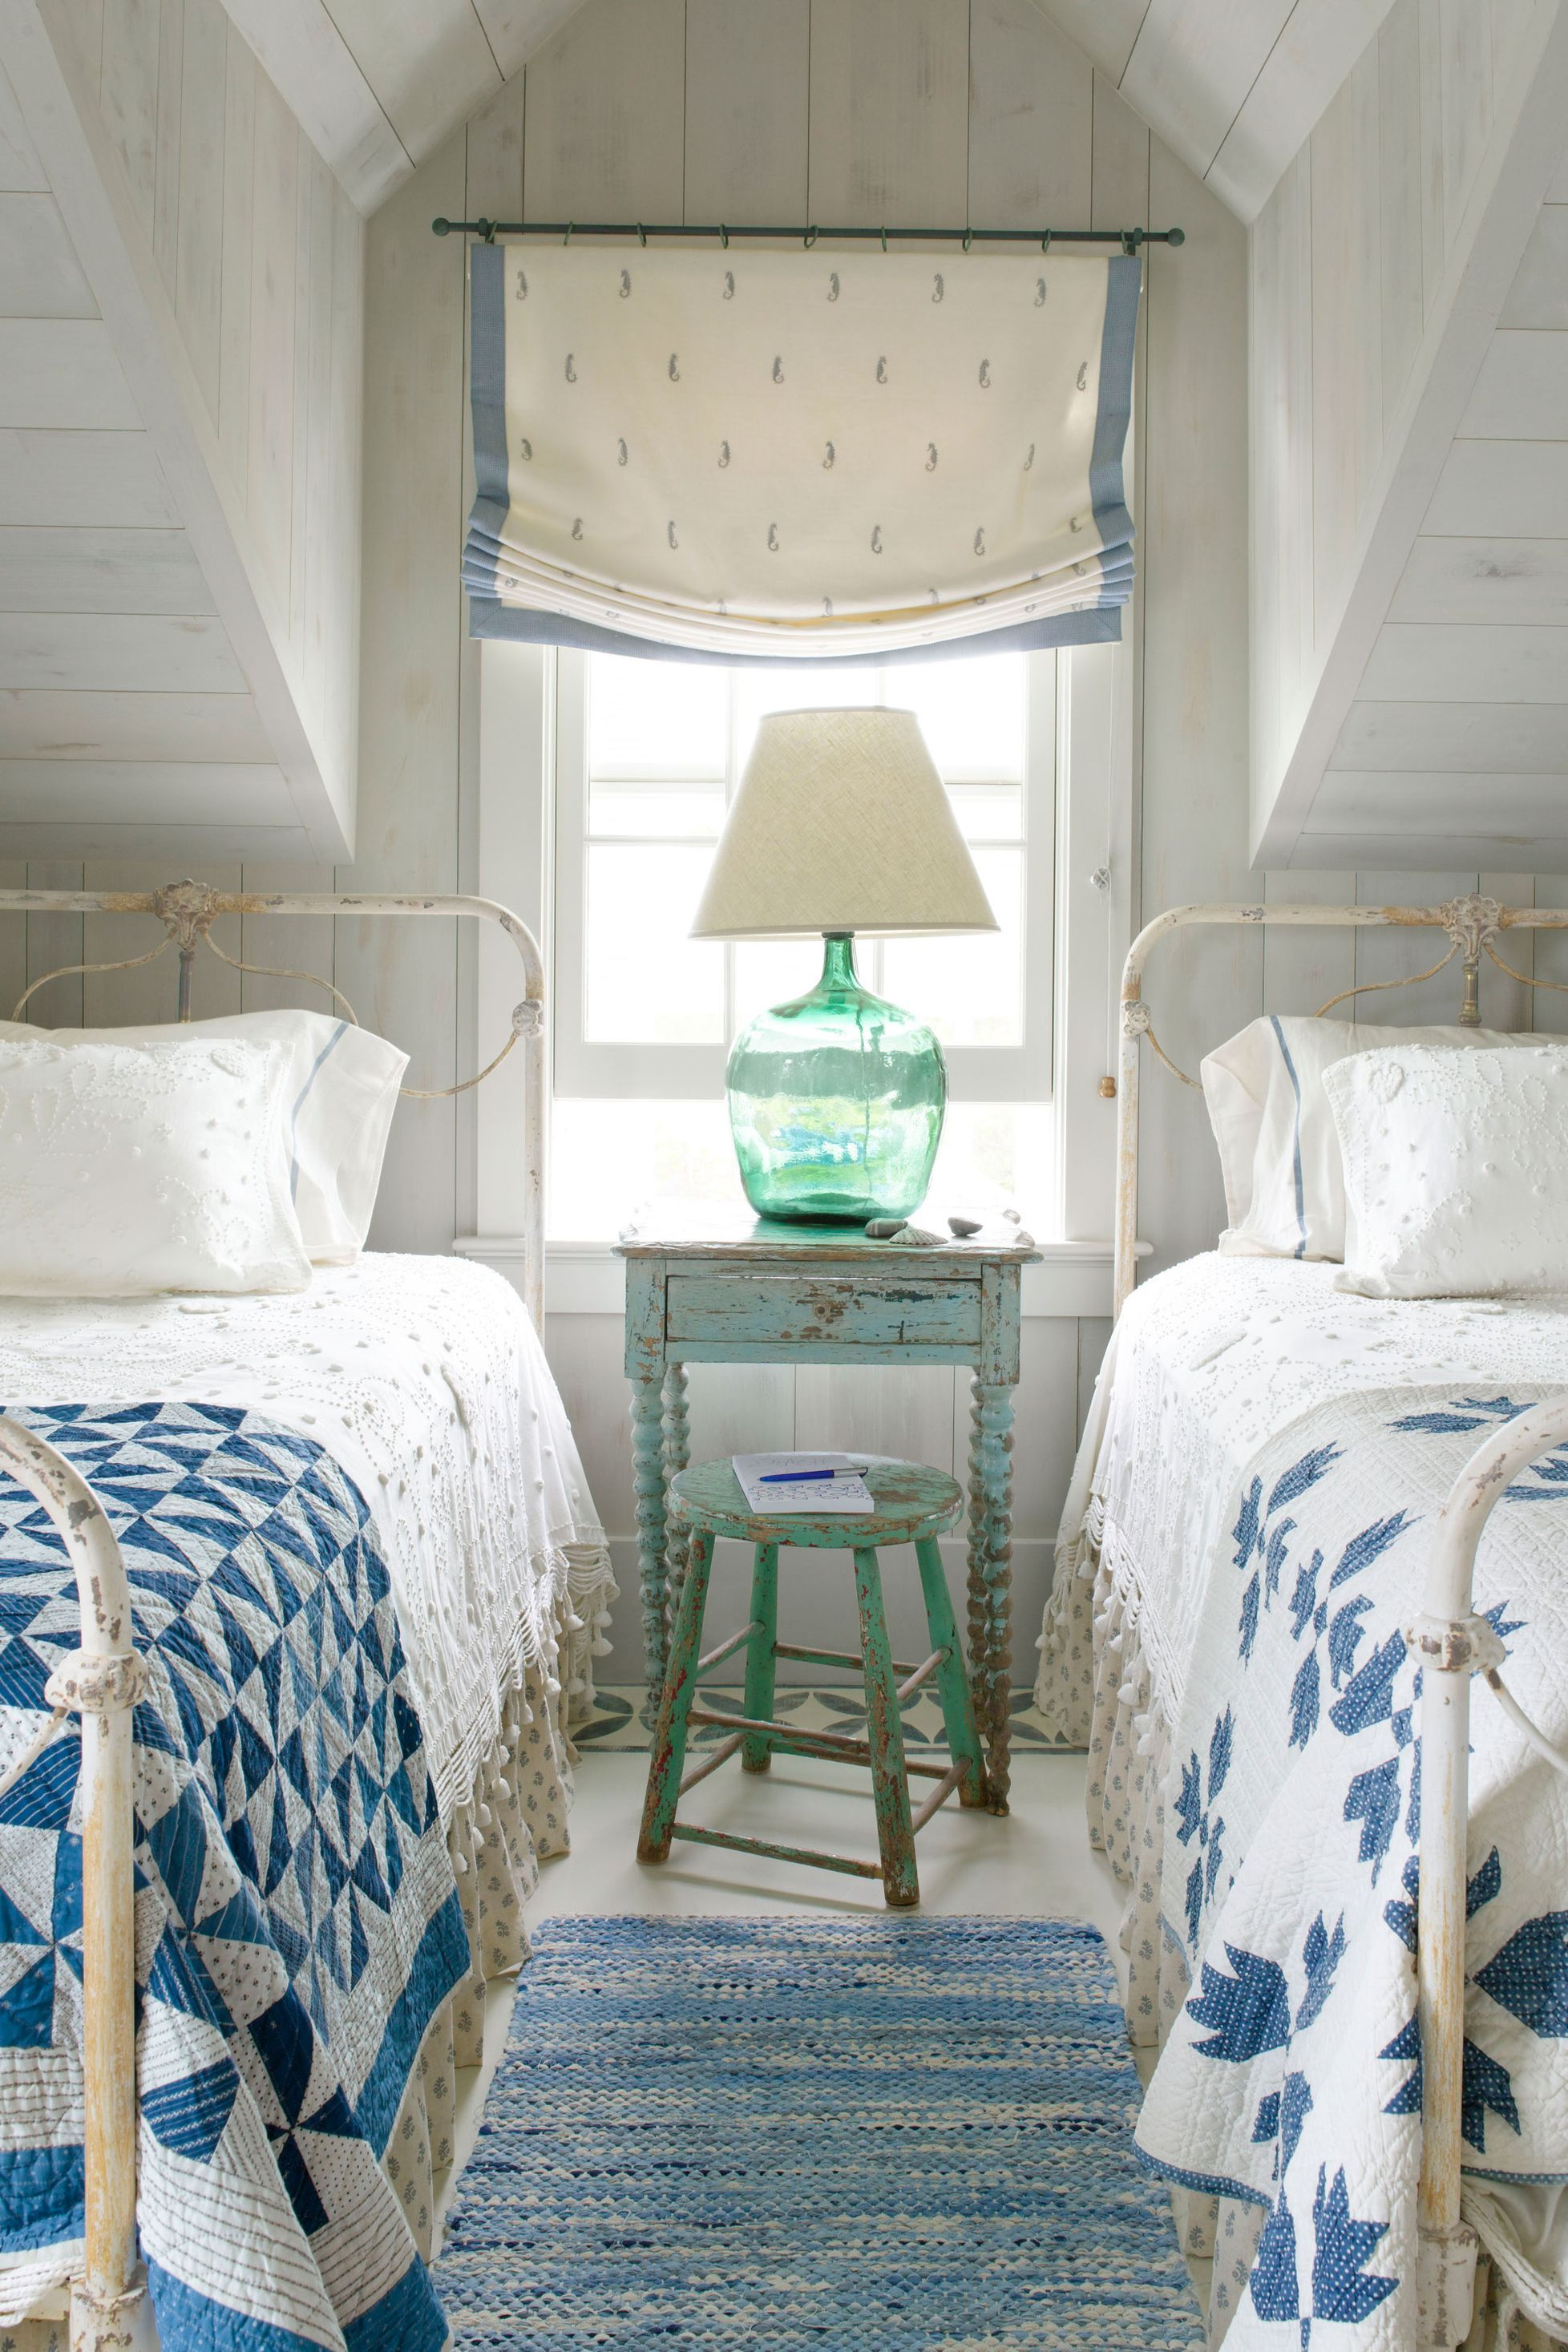 Bring Beach Vibes Into Any Home With These Decor Ideas